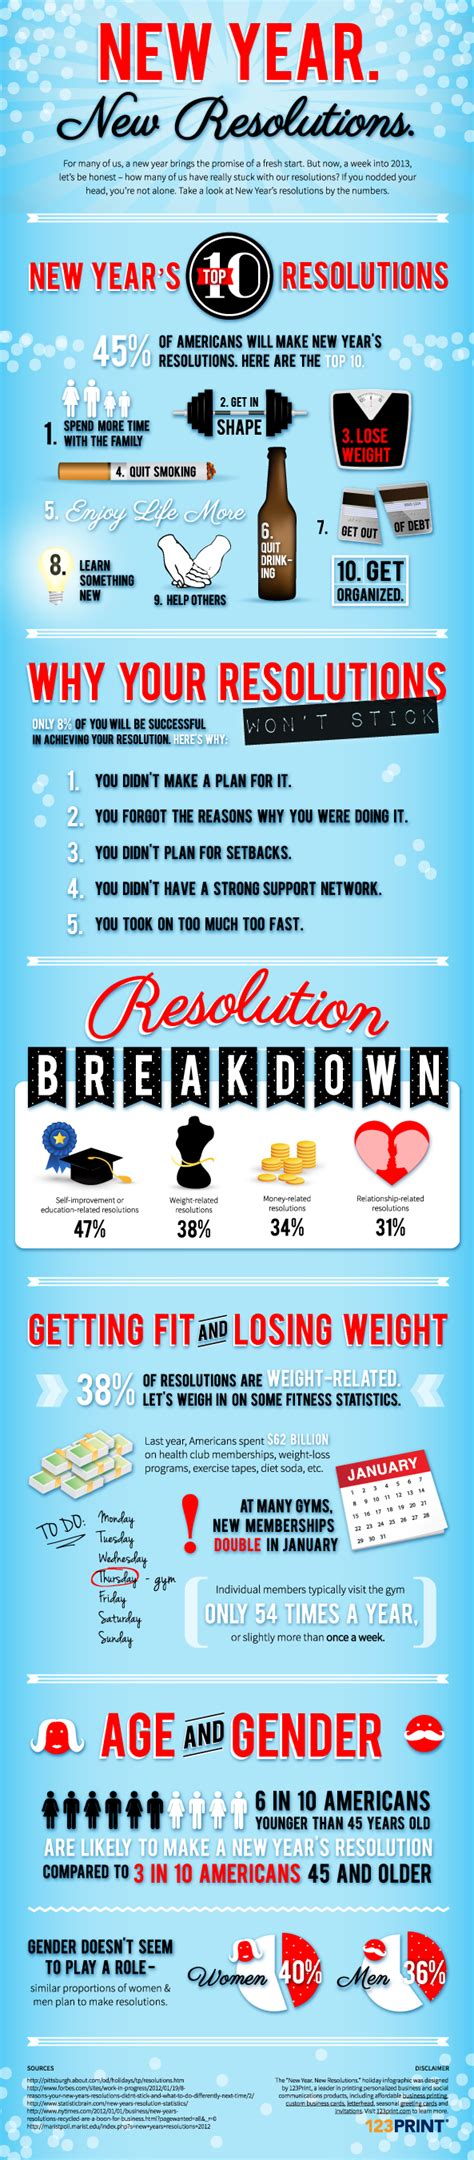 new year s facts by the numbers infographic new year new resolutions infographic 123print